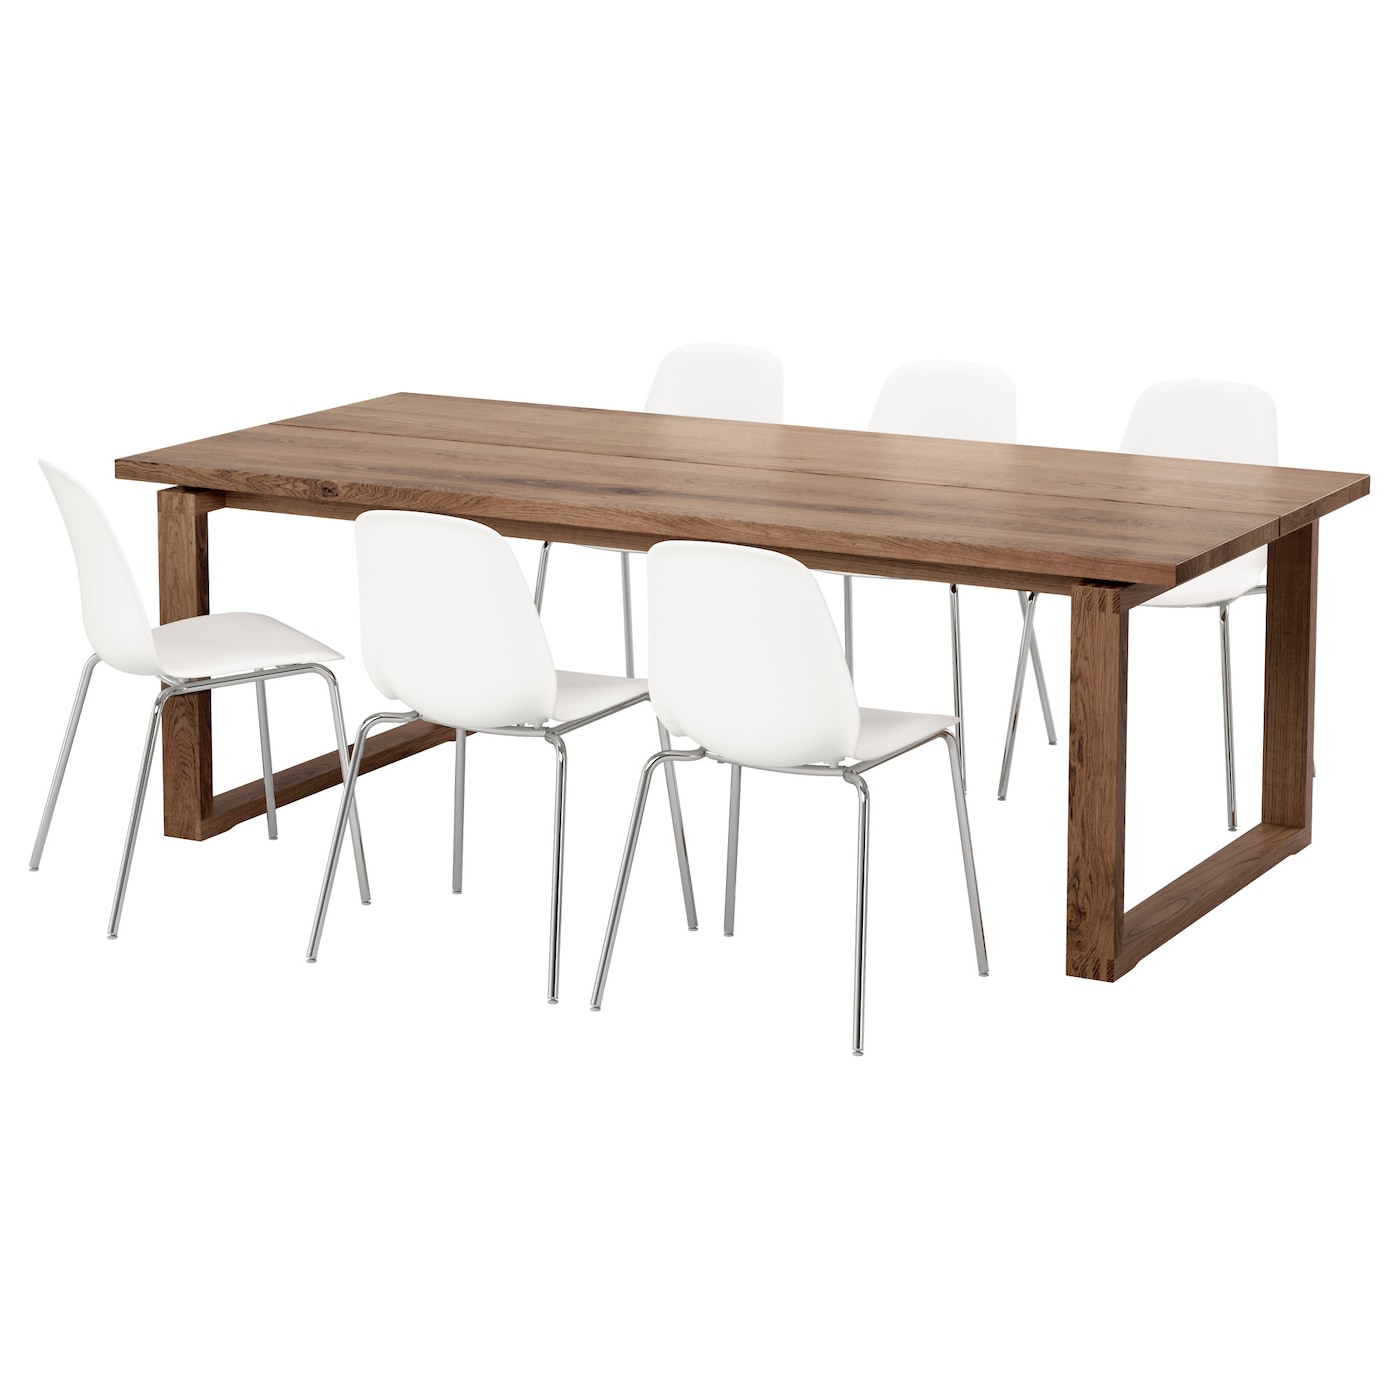 LEIFARNE M RBYL NGA Table And 6 Chairs Brown White 220x100 Cm IKEA